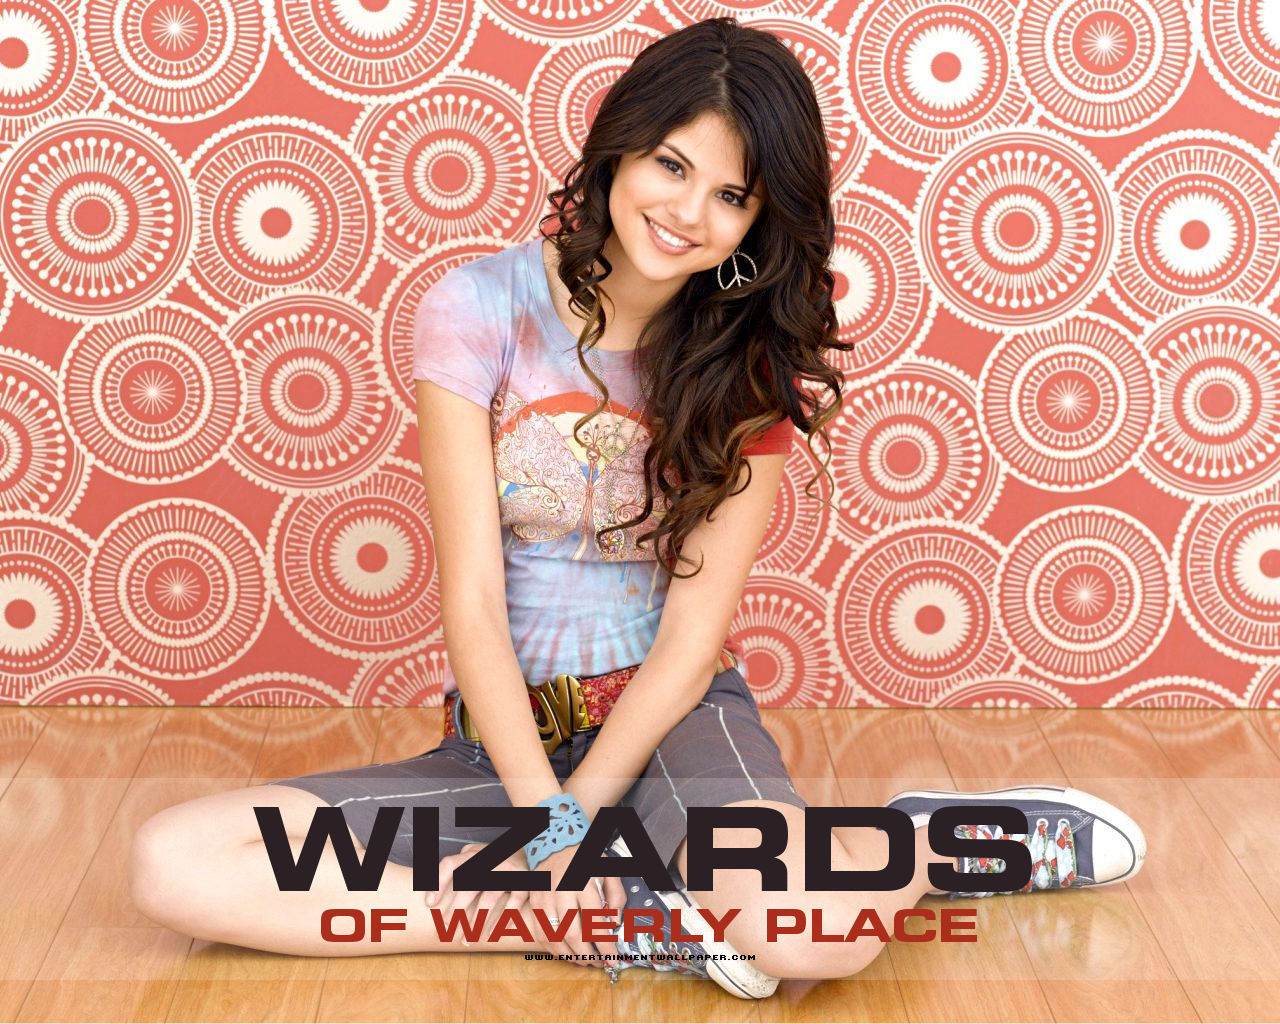 Wizards Of Waverly Place Images Alex Russo Hd Wallpaper